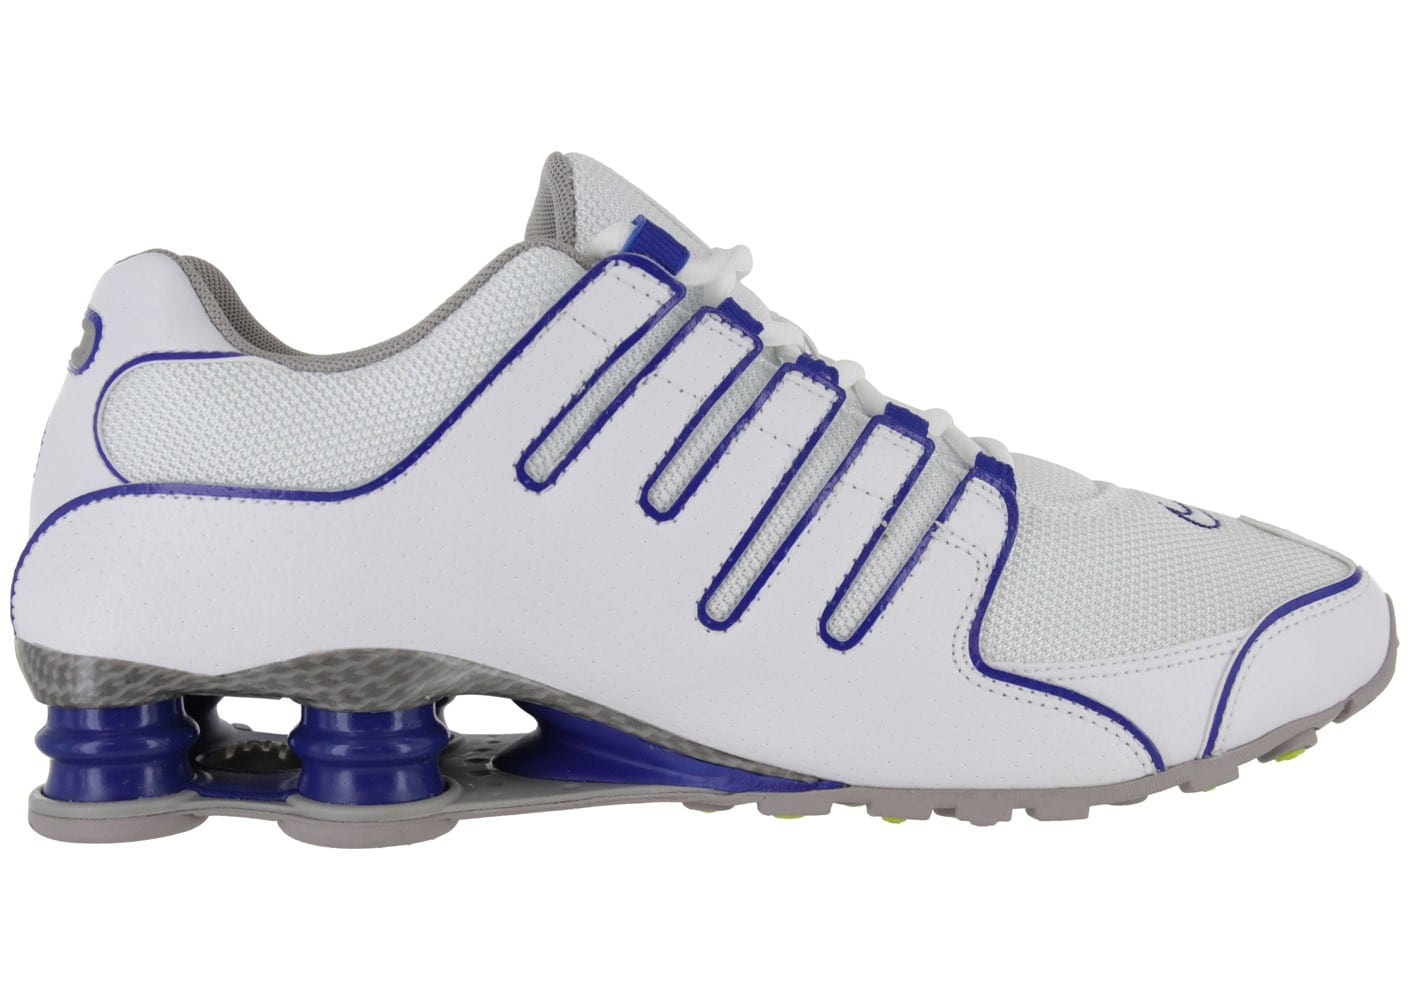 low priced ed68f d3213 ... where to buy shox blanche baskets chaussures nike homme chausport nz  vqwdves 1fd6b d1718